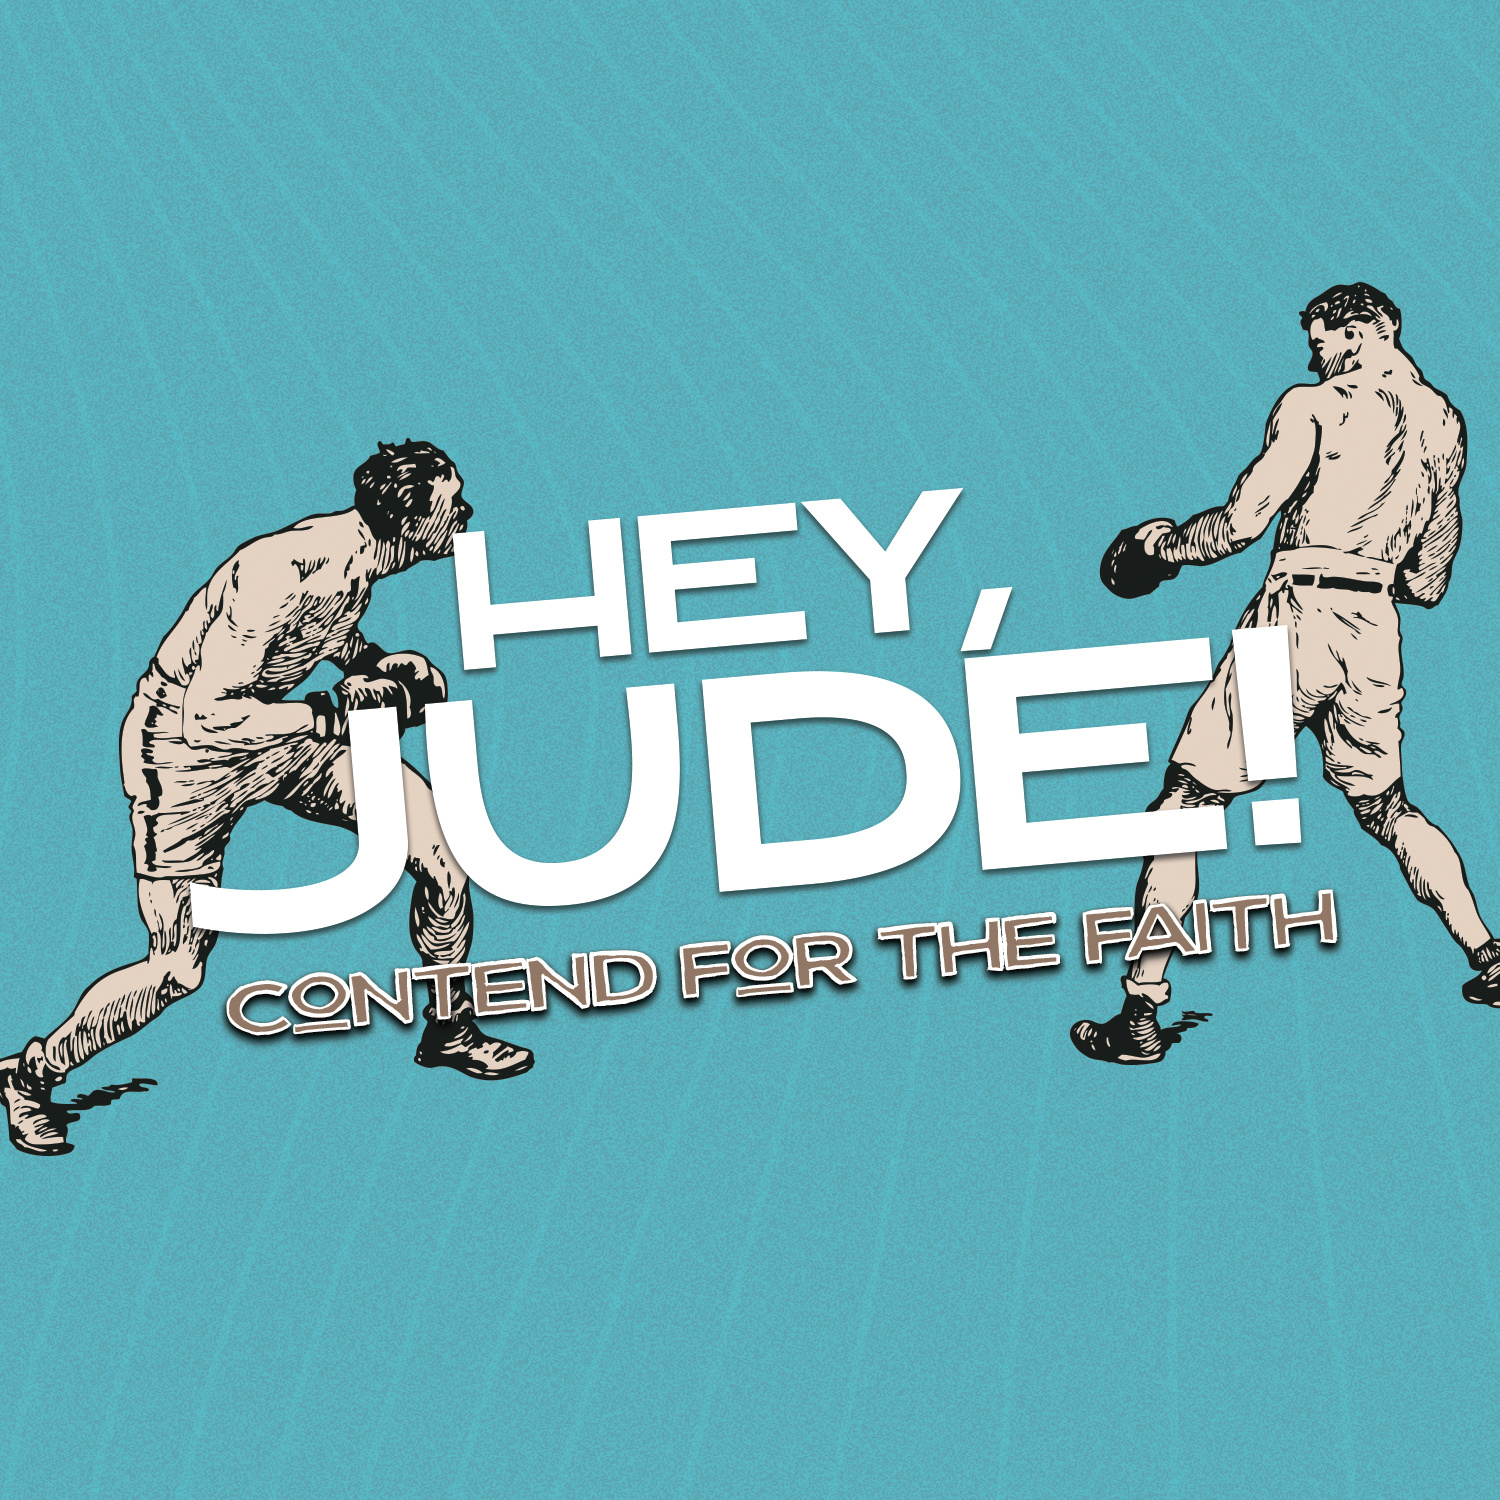 00 - Hey Jude Complete Series - (F013-F016) By Pastor Jeff Wickwire | LT03340-1